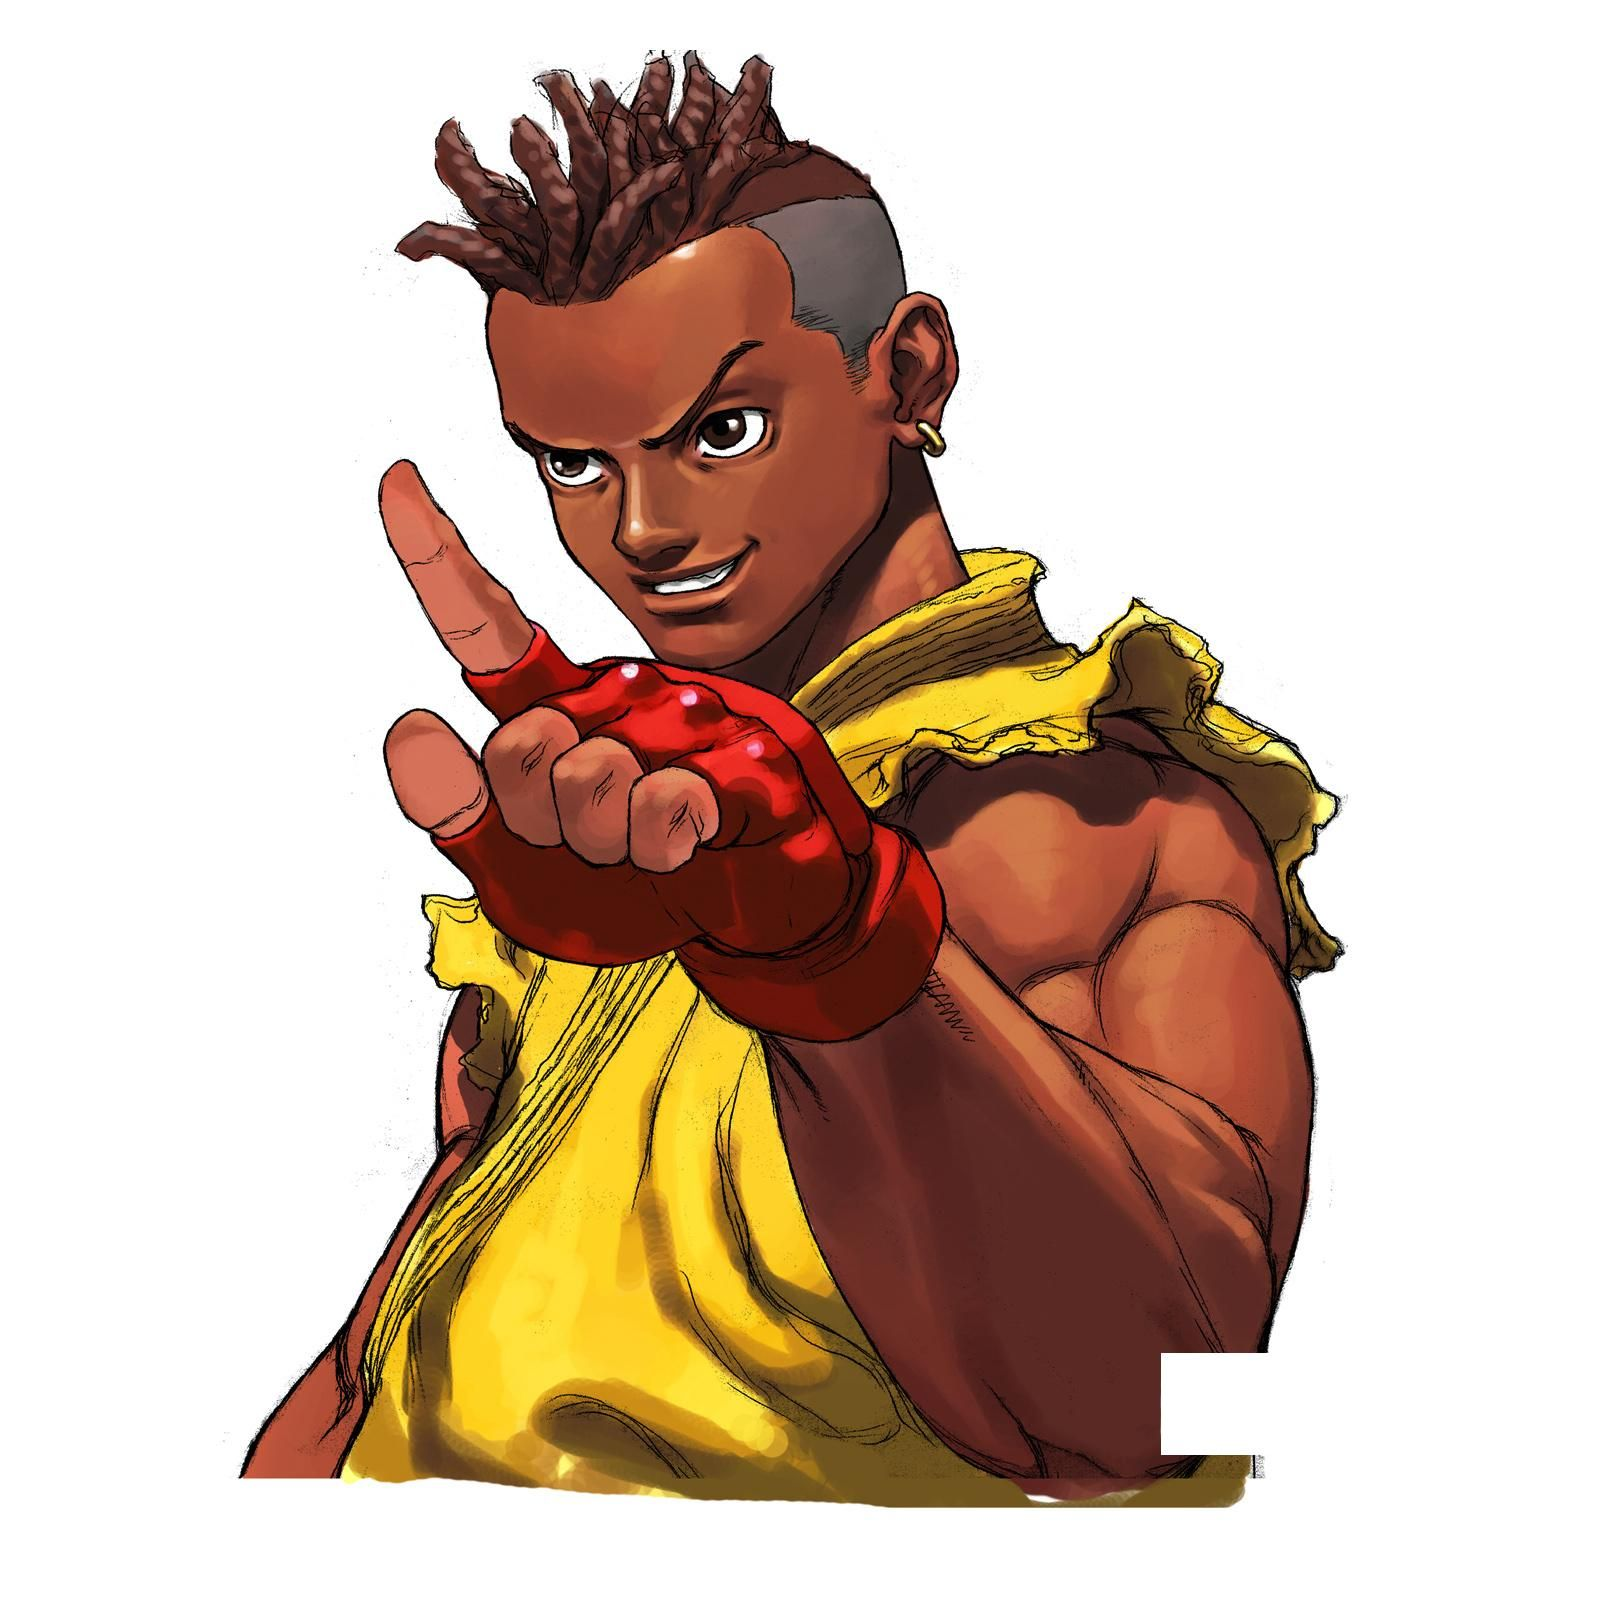 street fighter characters - HD1600×1600